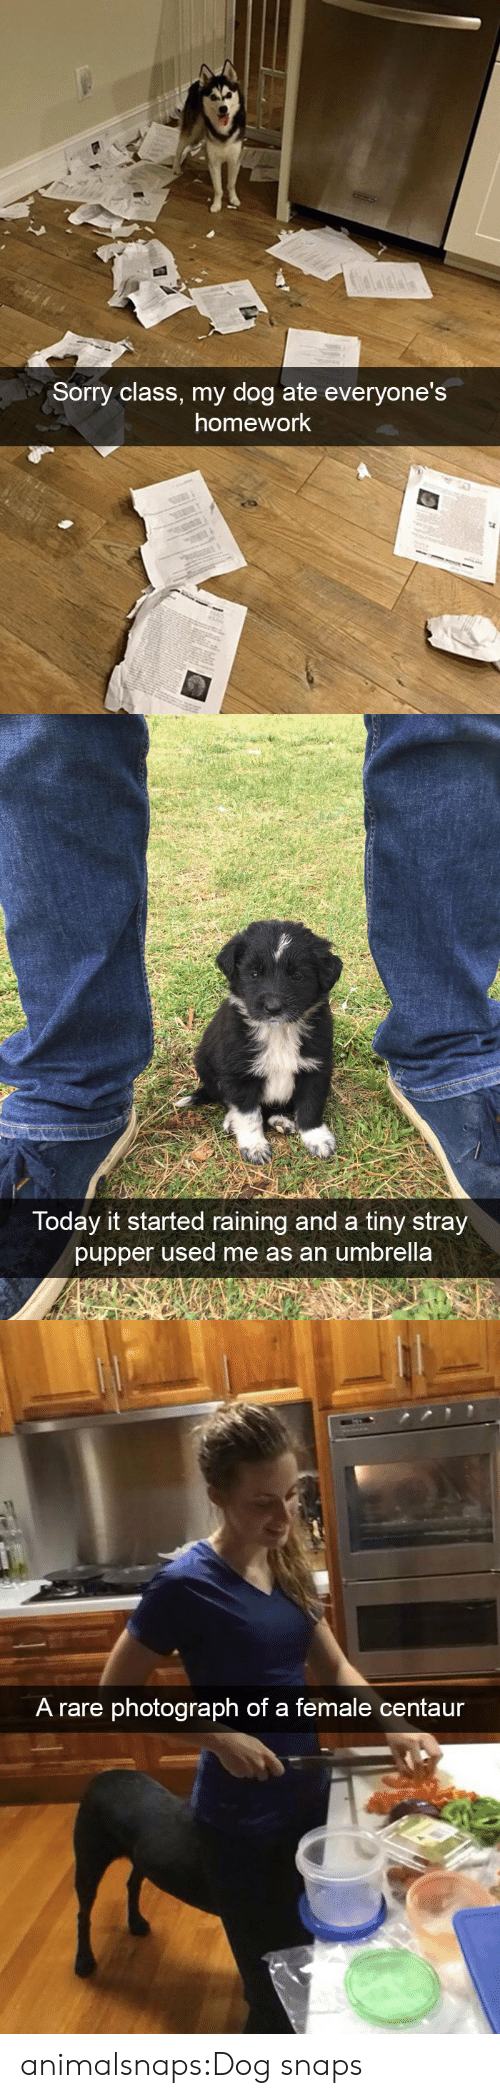 pupper: Sorry class, my dog ate everyone's  homework   Today it started raining and a tiny stray  pupper used me as an umbrella   A rare photograph of a female centaur animalsnaps:Dog snaps